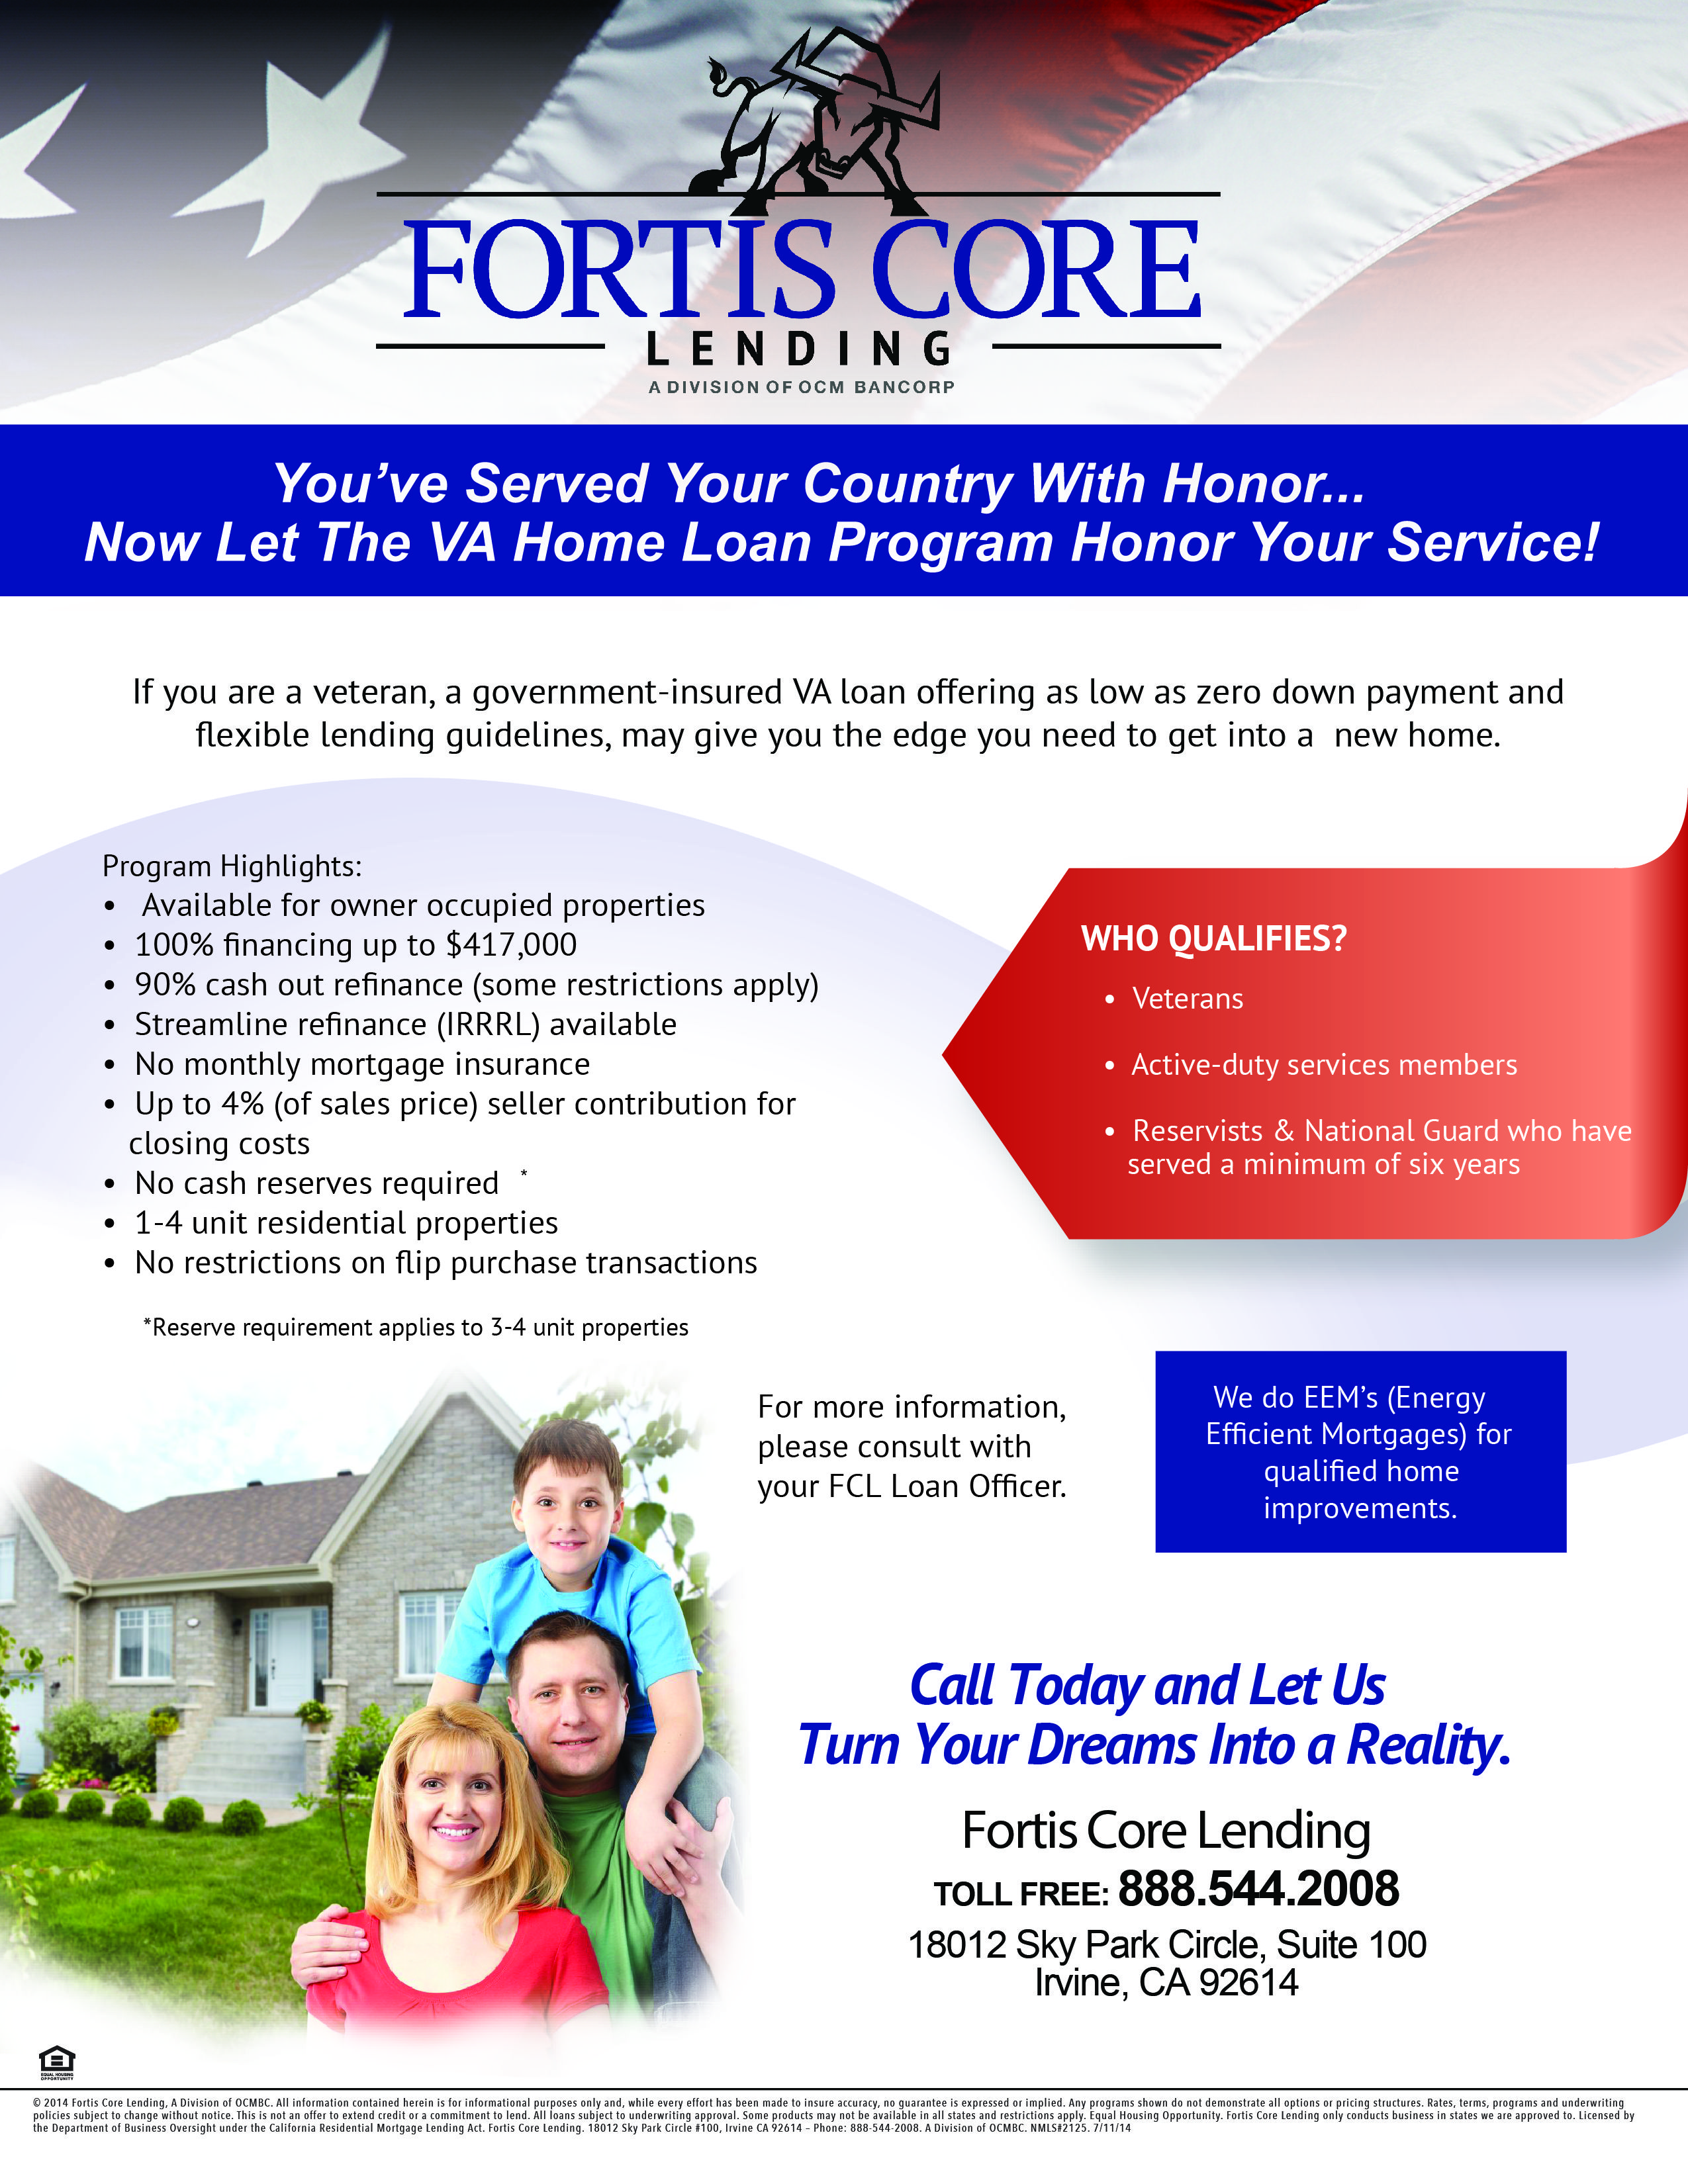 If You Are A Veteran A Government Insured Va Loan Offering As Low